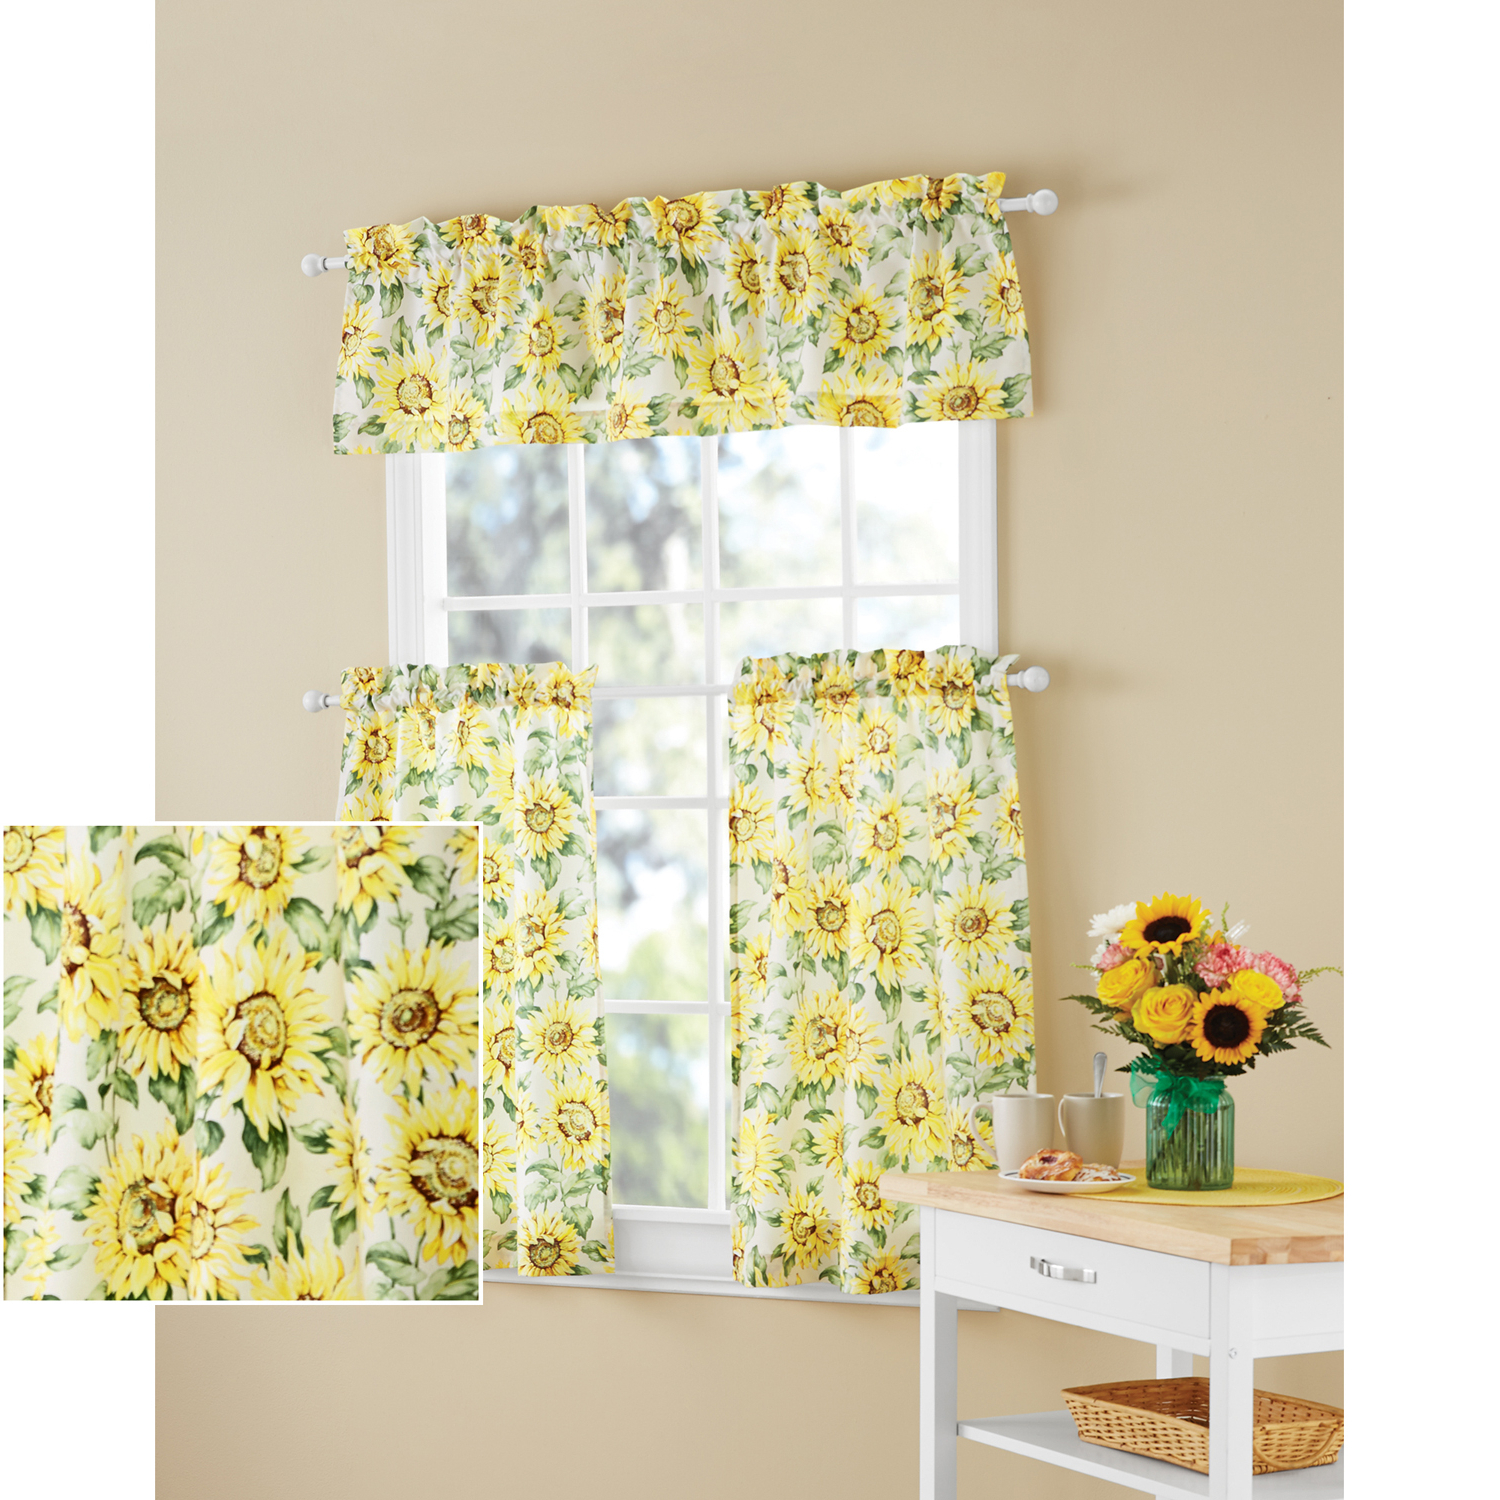 Details About Sunflower 3 Piece Kitchen Curtain Tier And Valance Set Home Decor Room Window Intended For 2021 Sunflower Cottage Kitchen Curtain Tier And Valance Sets (View 13 of 20)